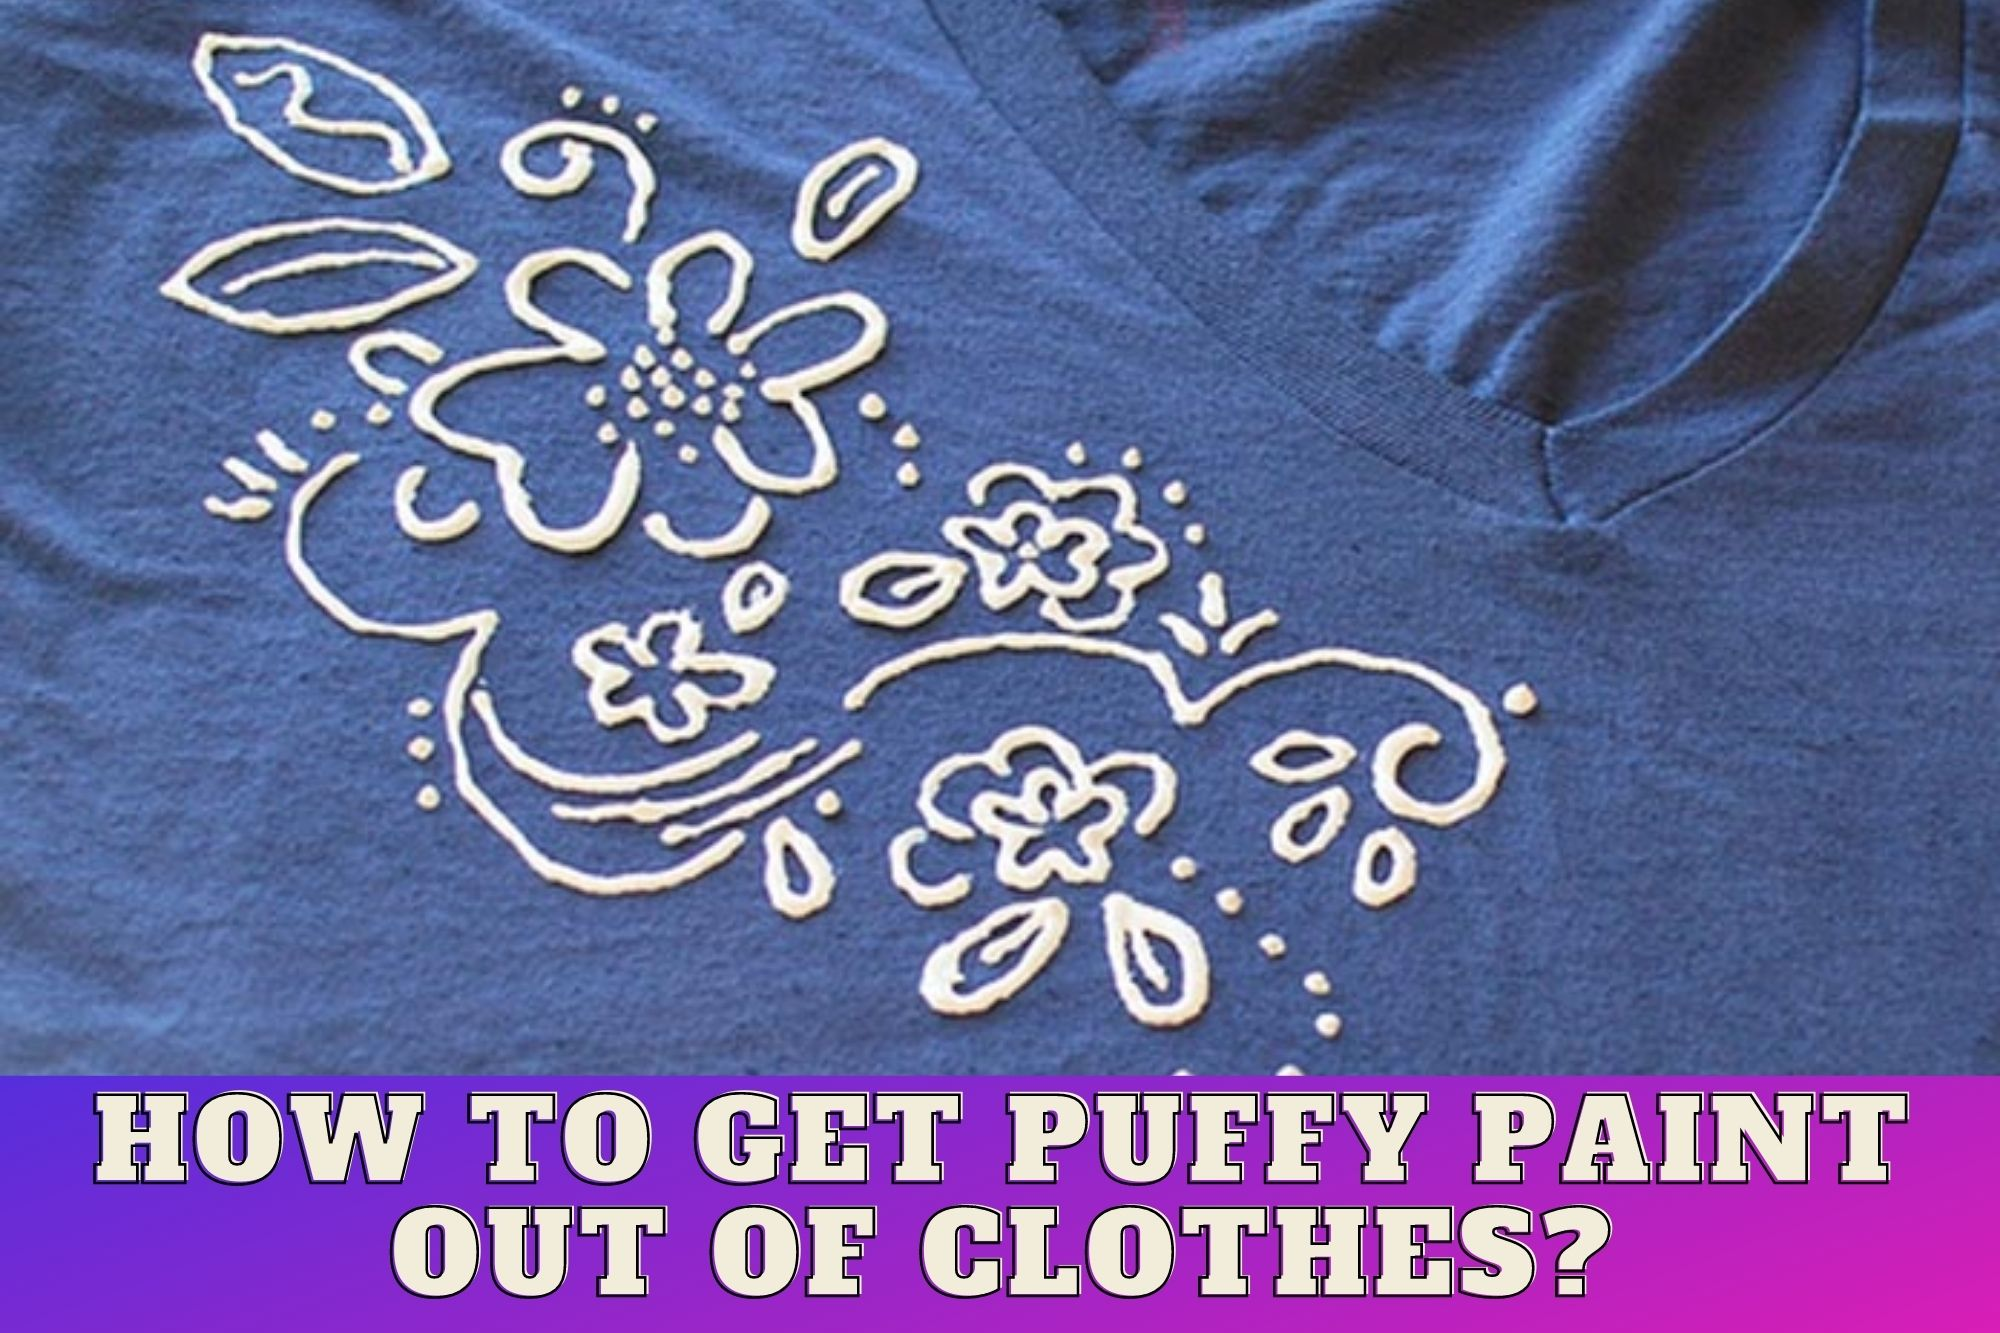 How To Get Puffy Paint Out Of Clothes?